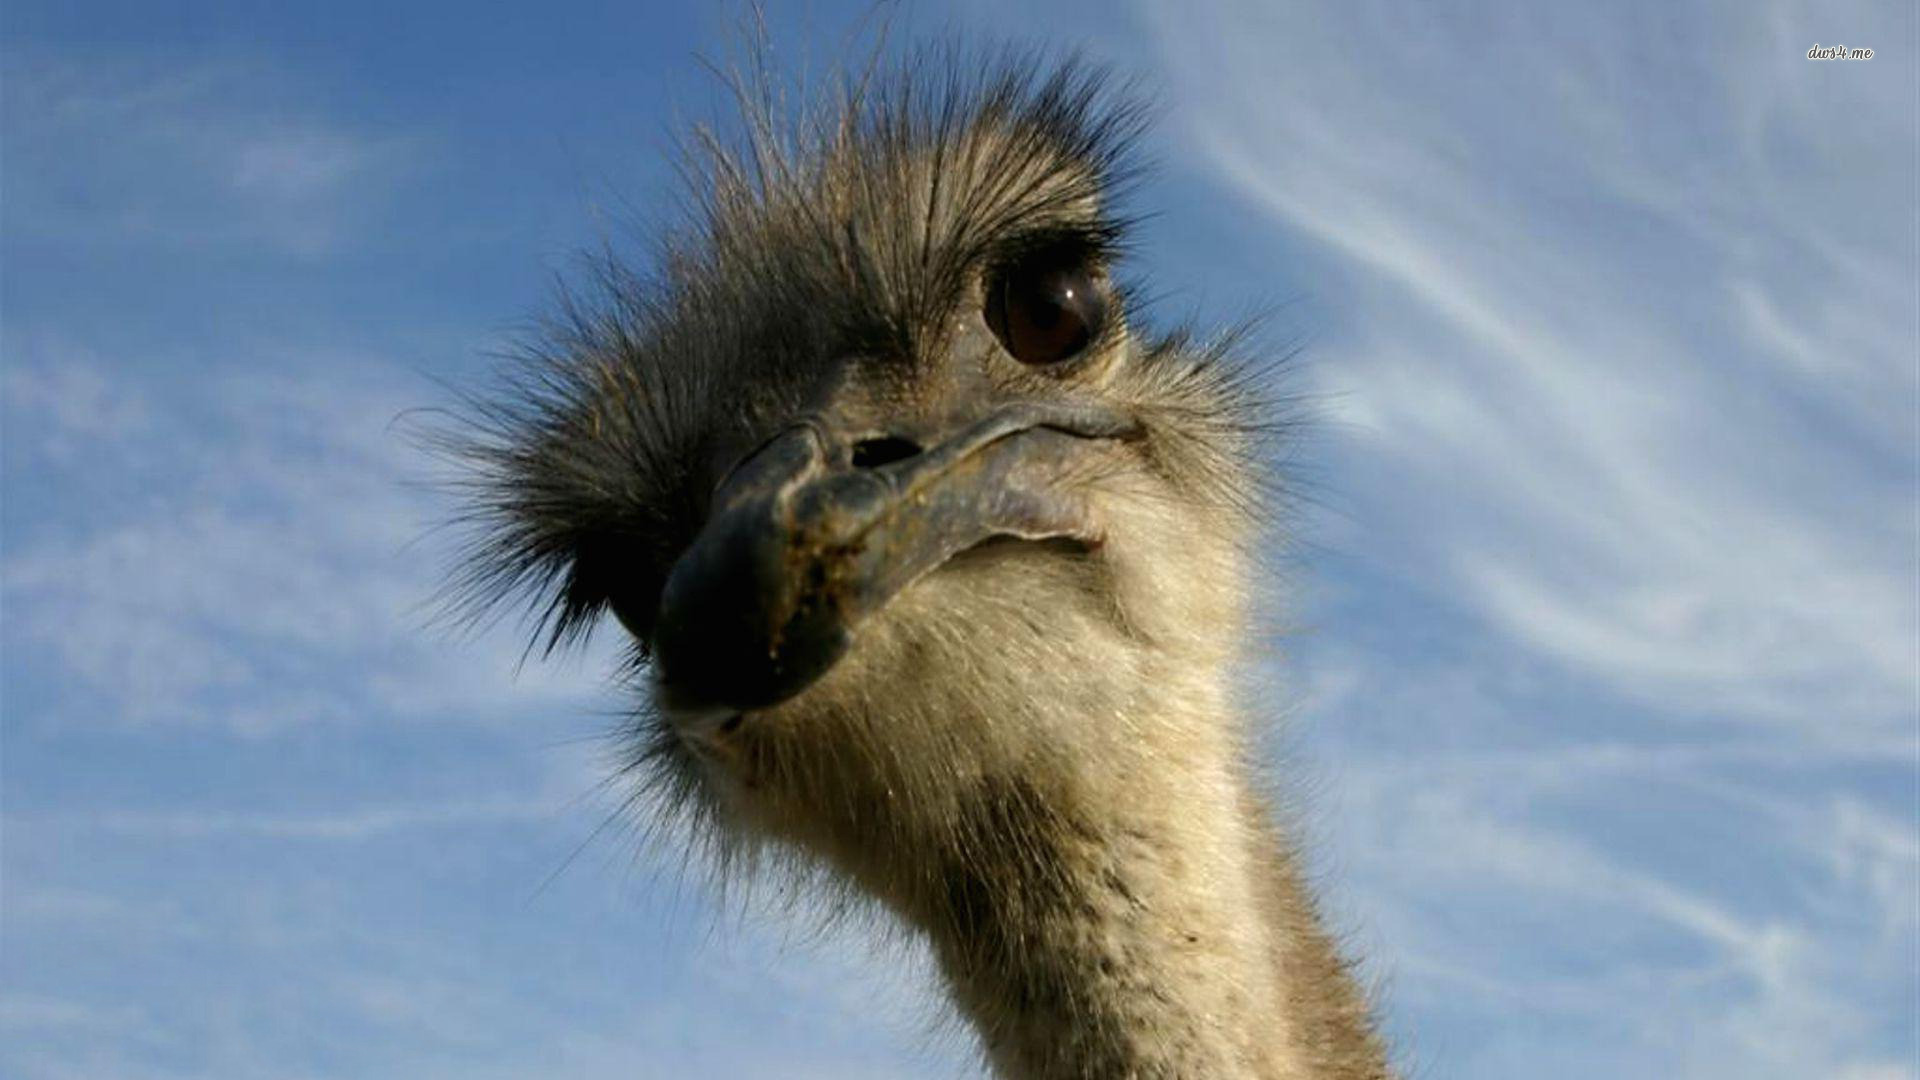 funny-looking-ostrich-1.jpg